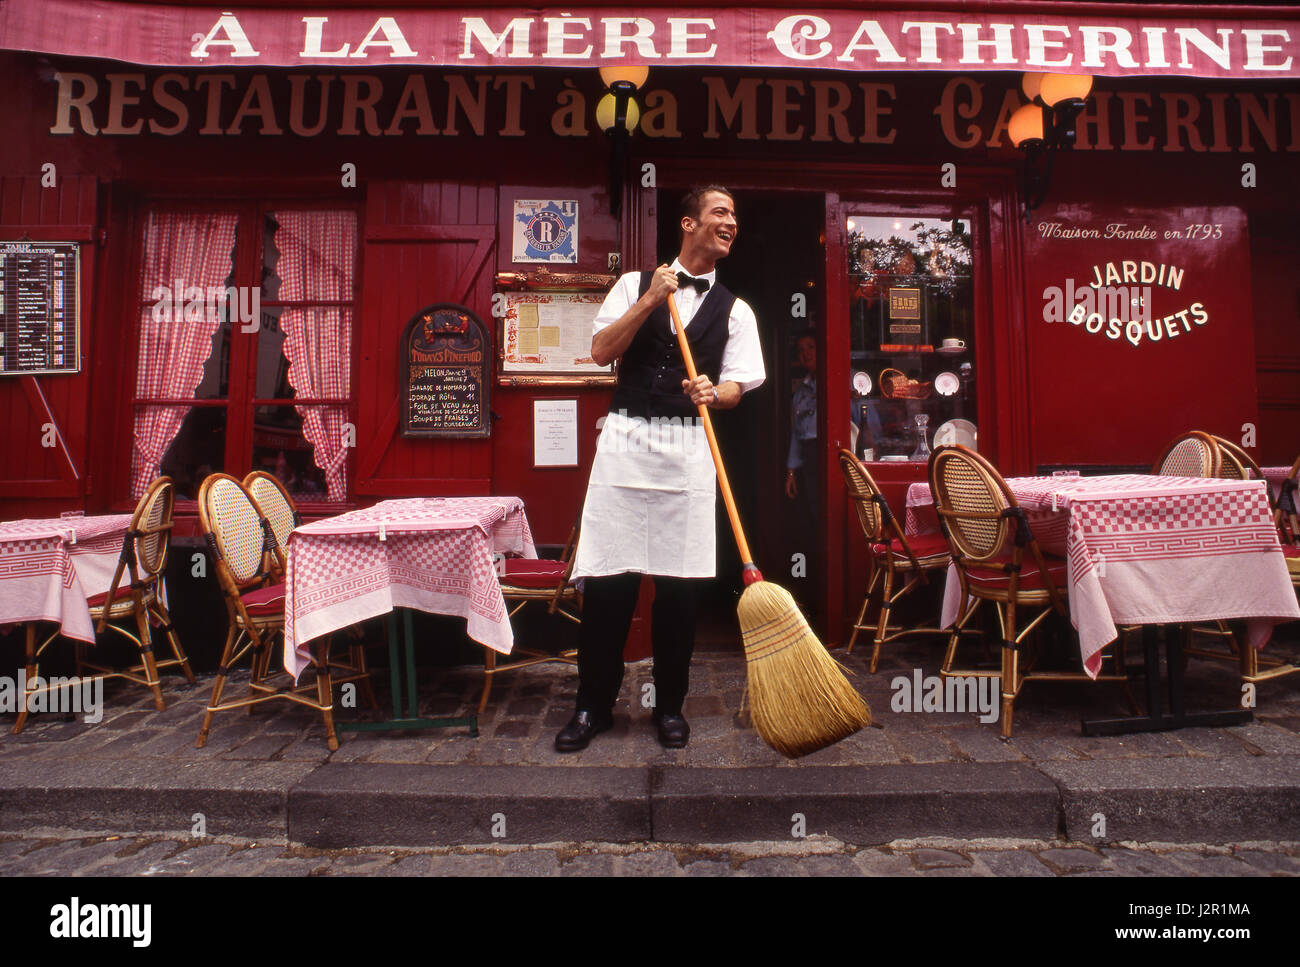 PARIS WAITER MONTMARTRE Typical French waiter, sweeping  preparations at renowned Parisian restaurant 'A La - Stock Image